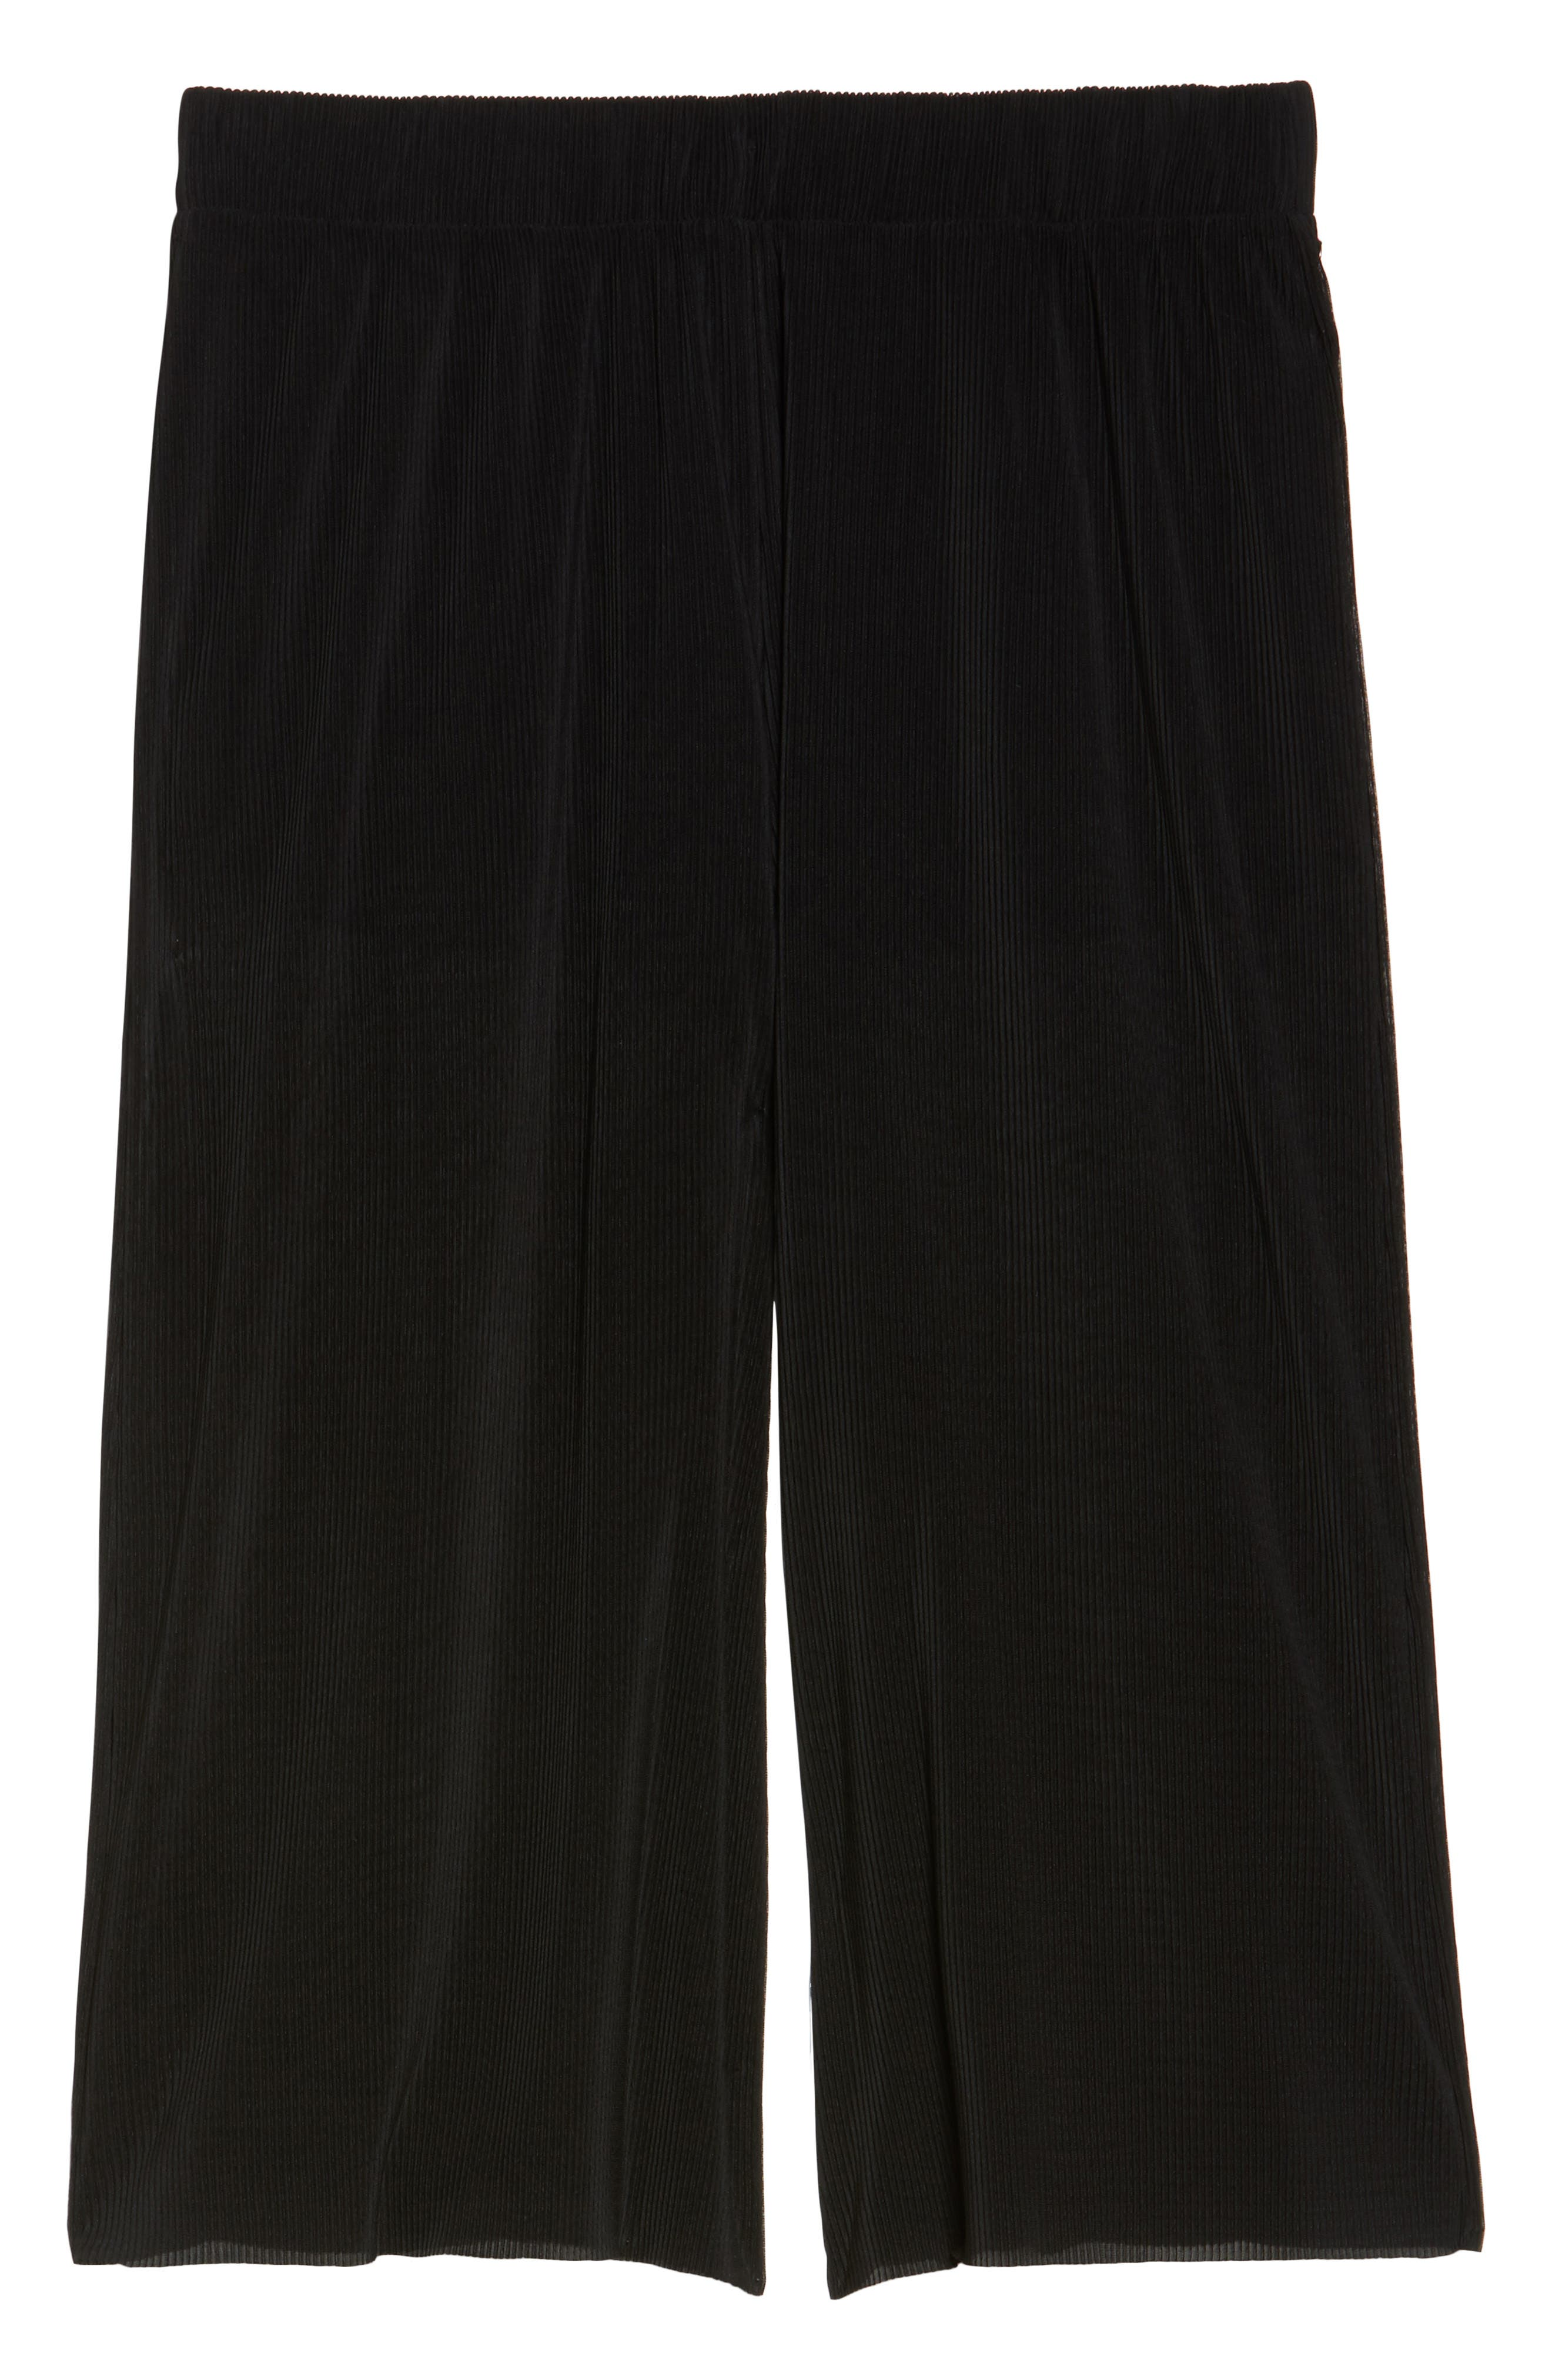 ZELLA,                             Pleated Culottes,                             Alternate thumbnail 6, color,                             001